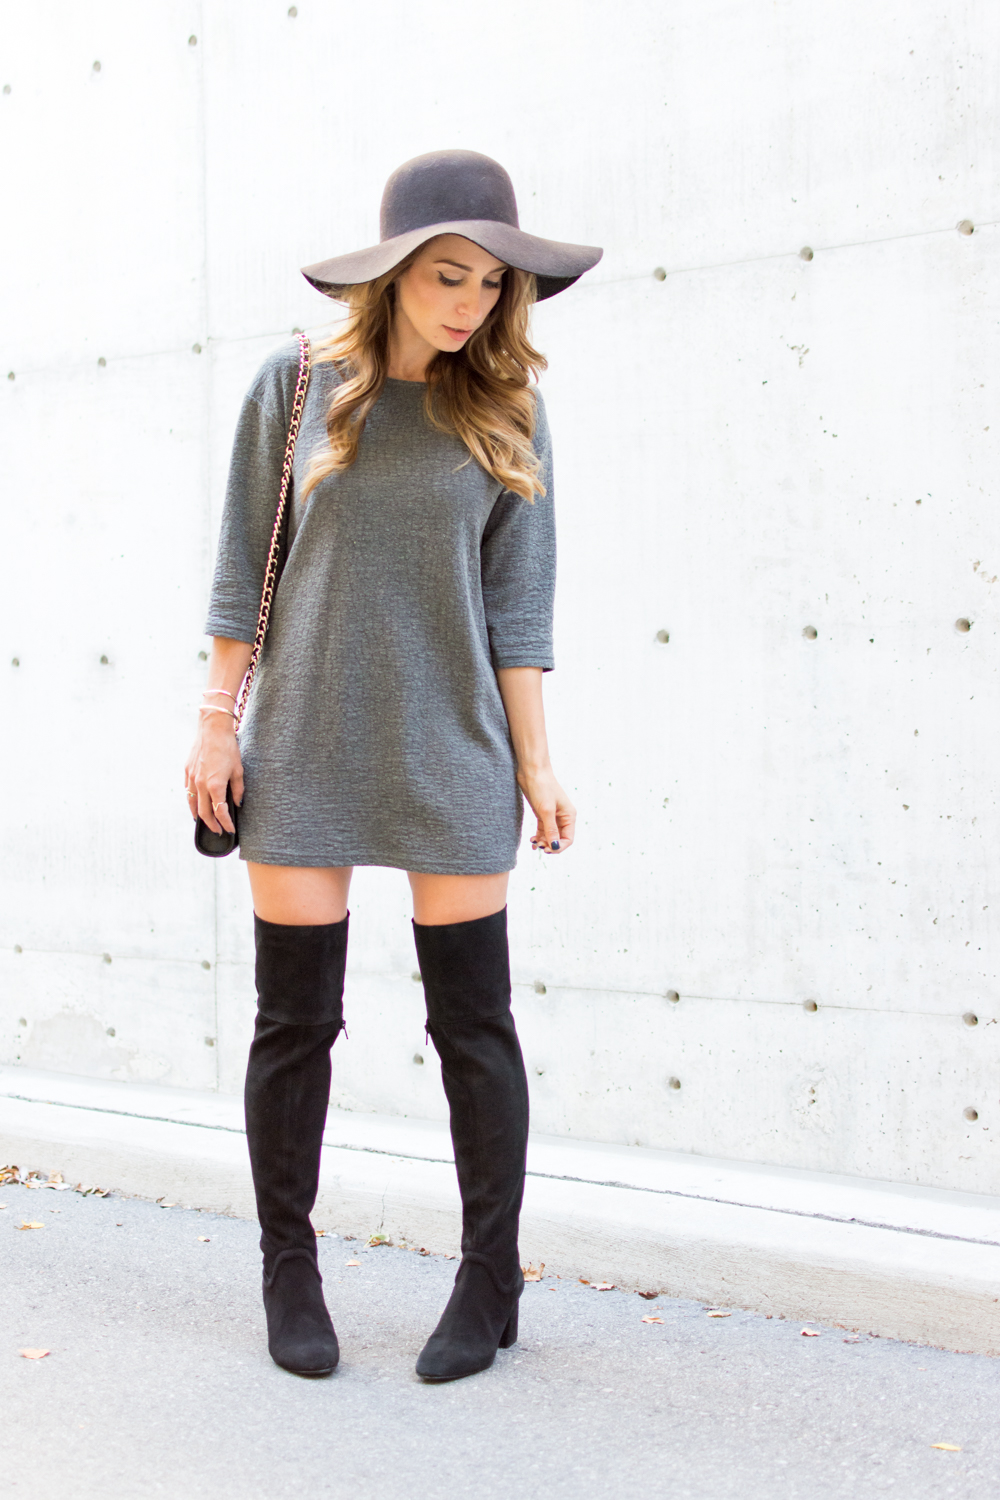 OOTD - Over The Knee Boots | La Petite Noob | A Toronto-Based ...